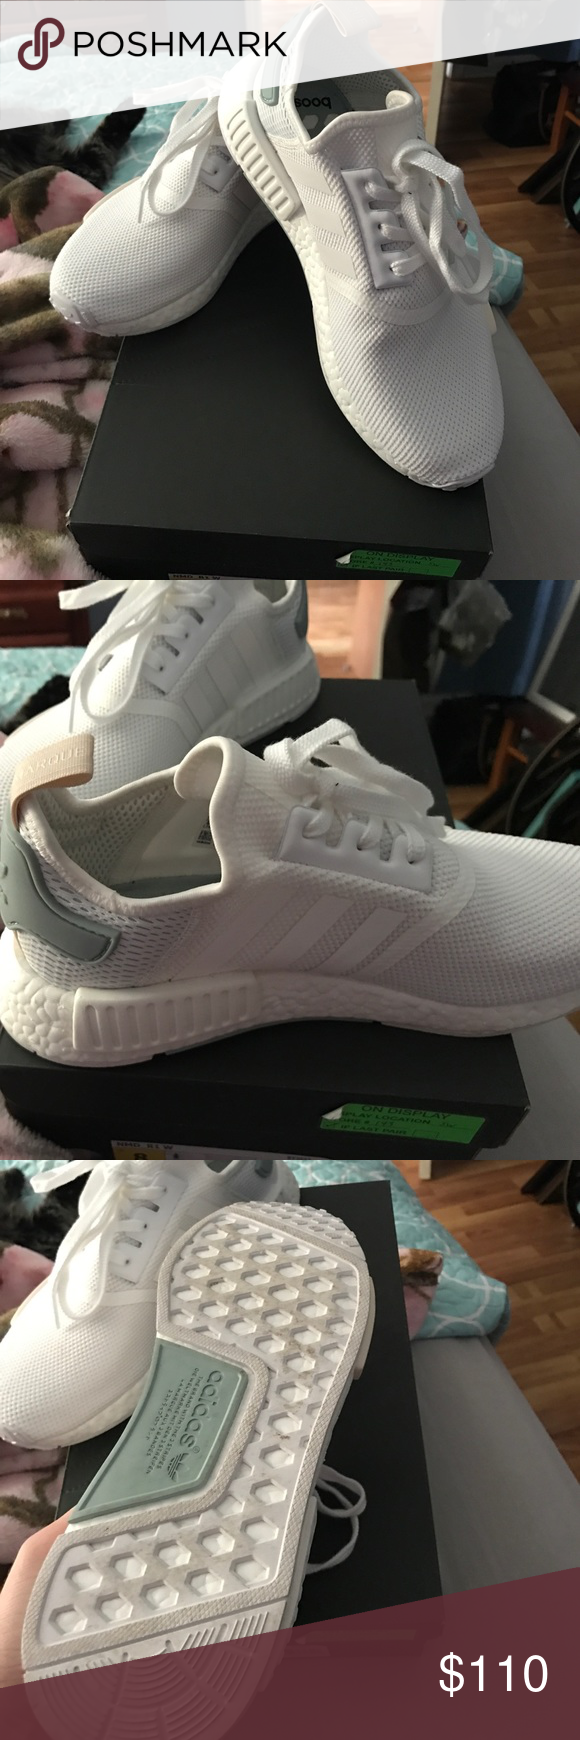 ec7c6121d Adidas NMD all white womens shoes NWT Adidas women NMD R1 all white womens  shoes.